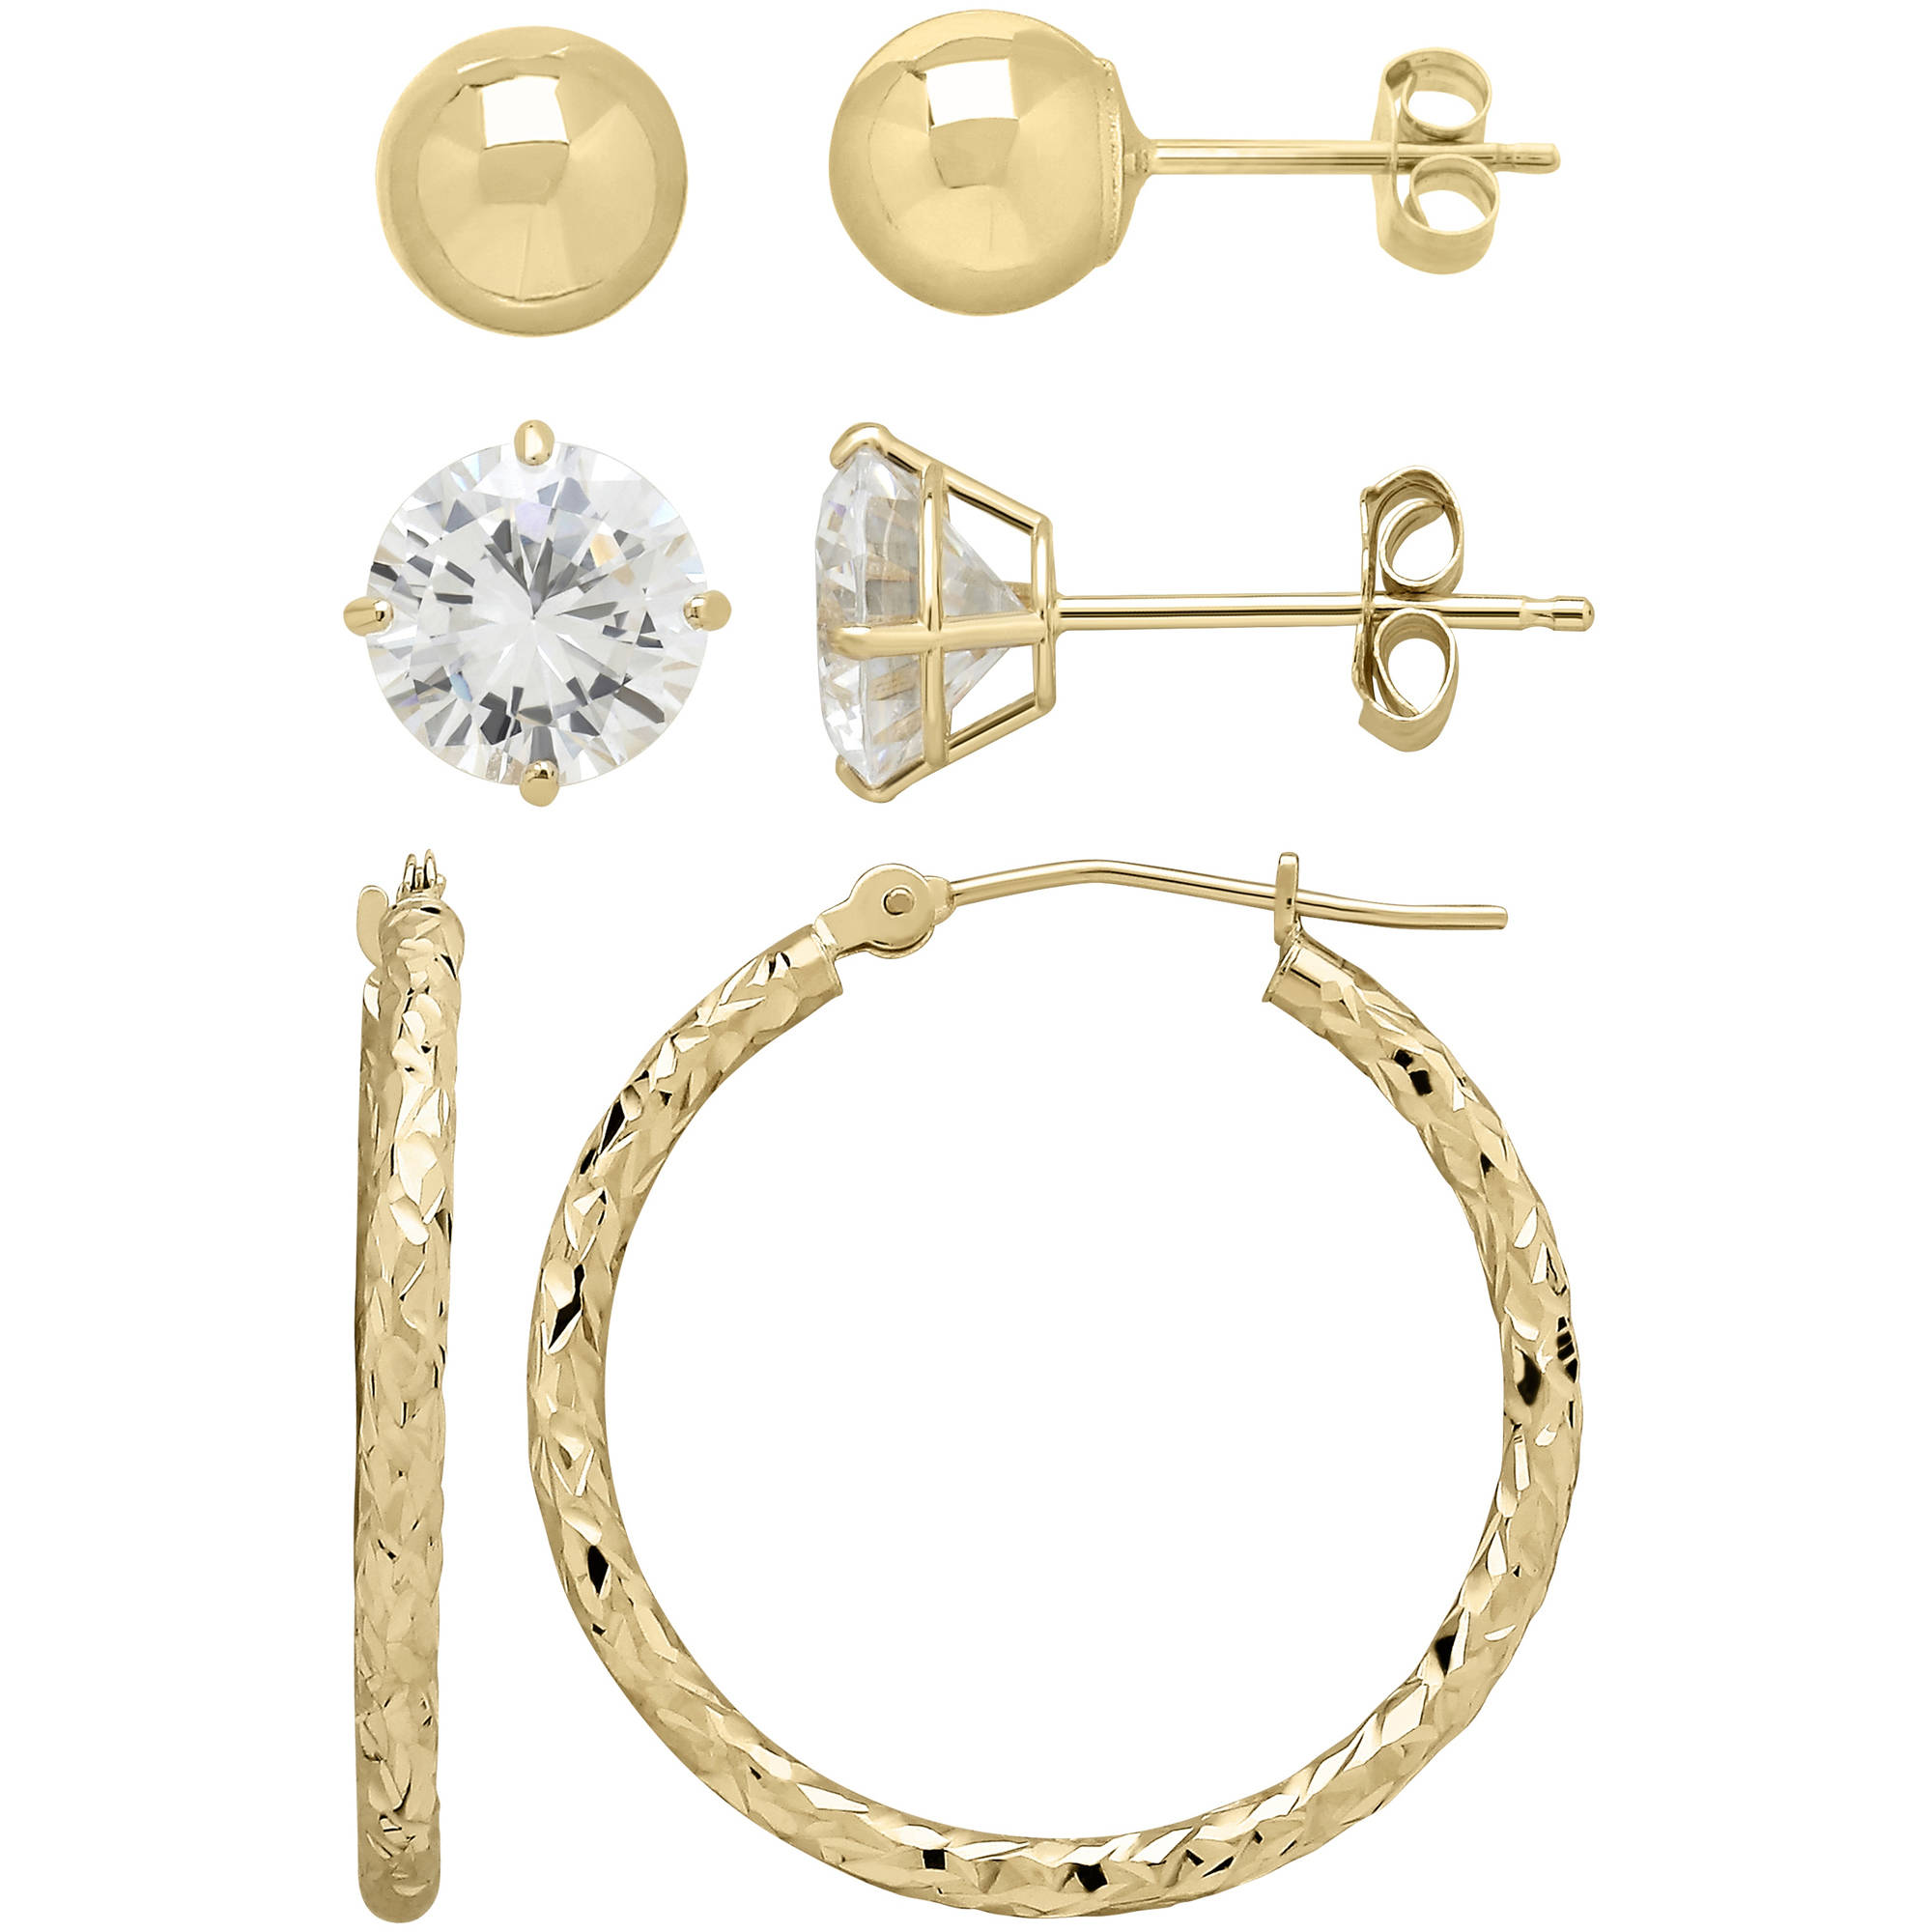 Simply gold 10kt Yellow Gold Ball Stud, Cubic Zirconia Stud and Hoop Earrings Set